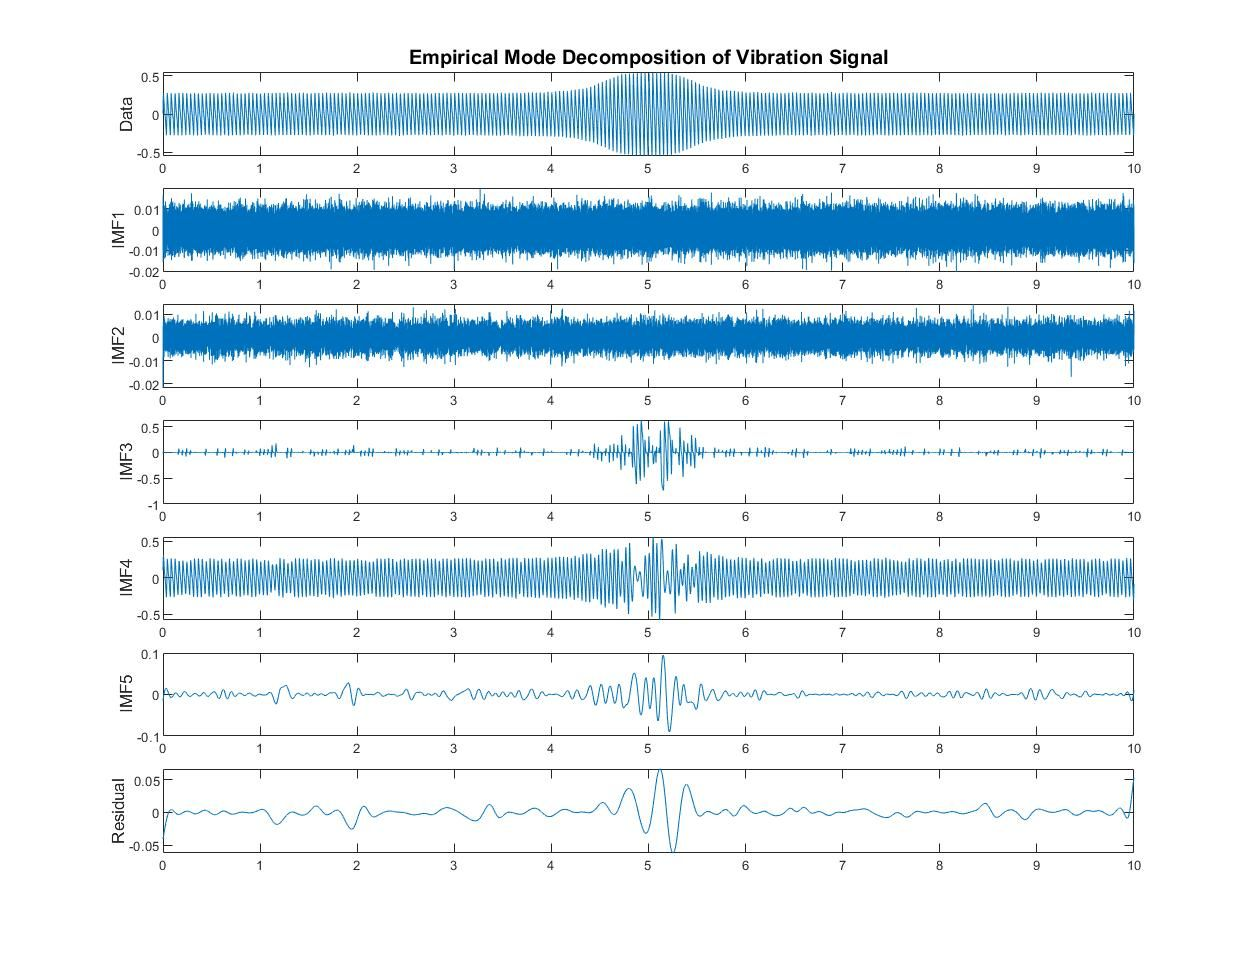 Vibration signal analyzed in MATLAB with empirical mode decomposition